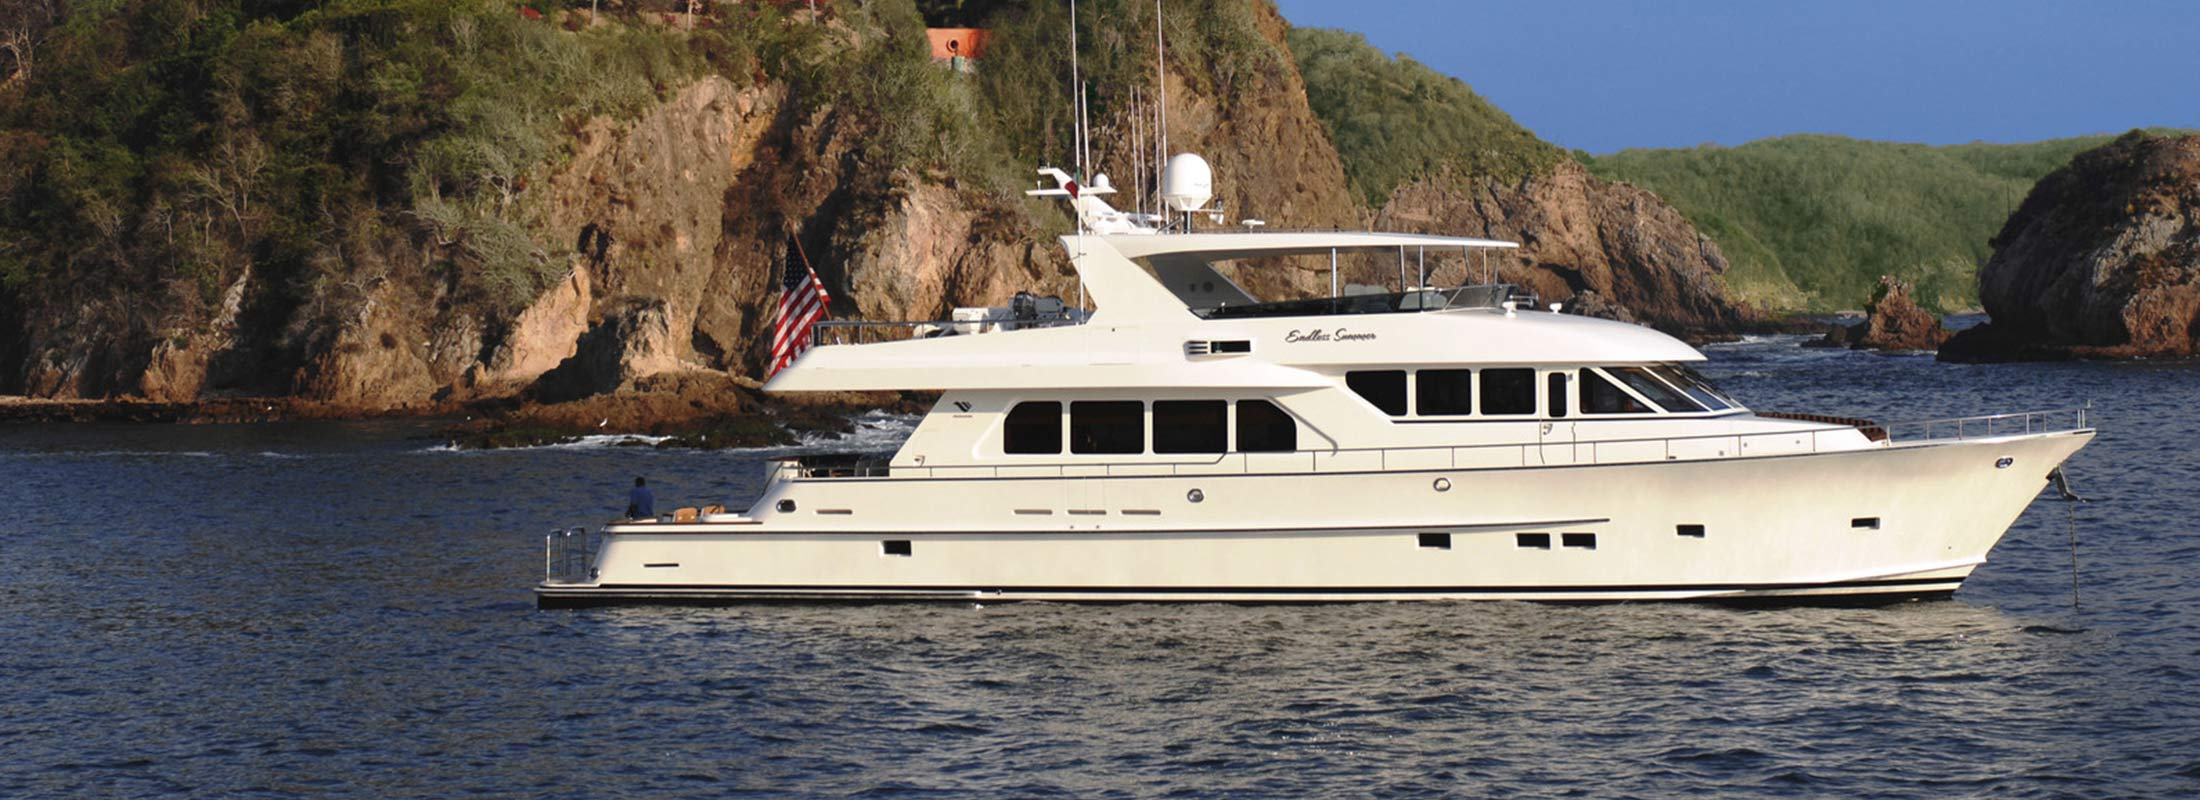 Endless Summer Motor Yacht for Charter Mediterranean slider 1